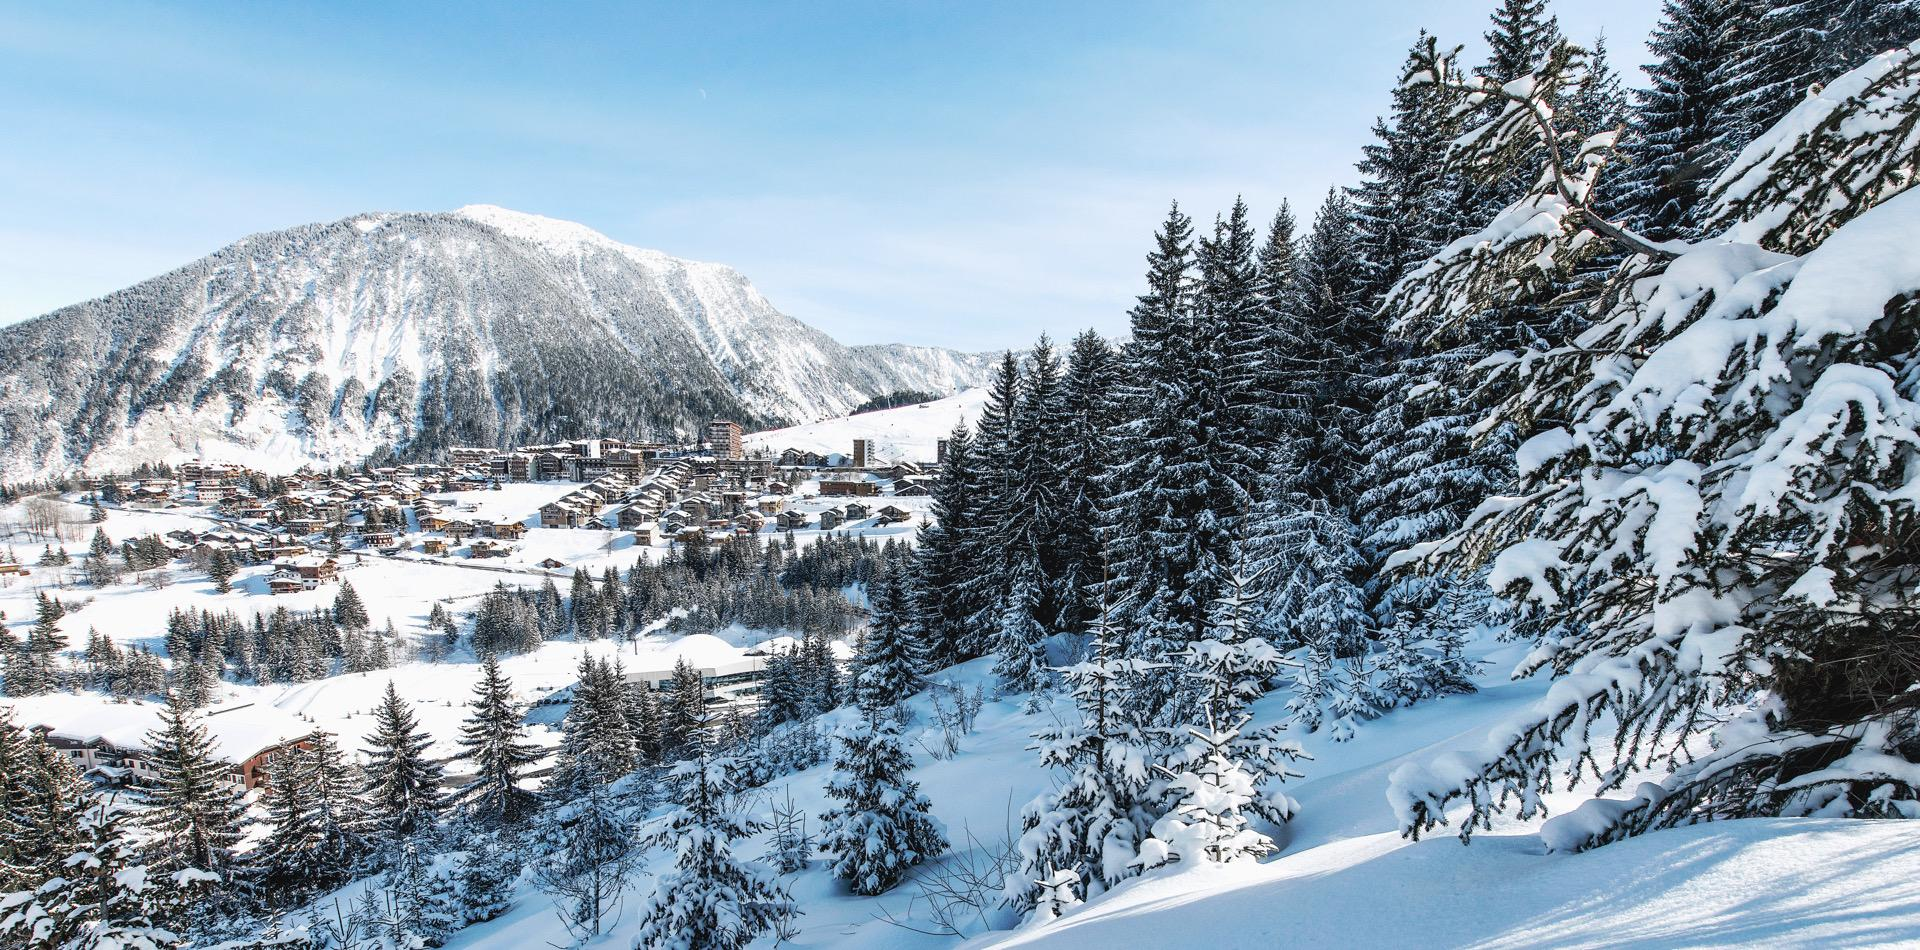 Courchevel Ski Resort In Alps Mountains, France Stock